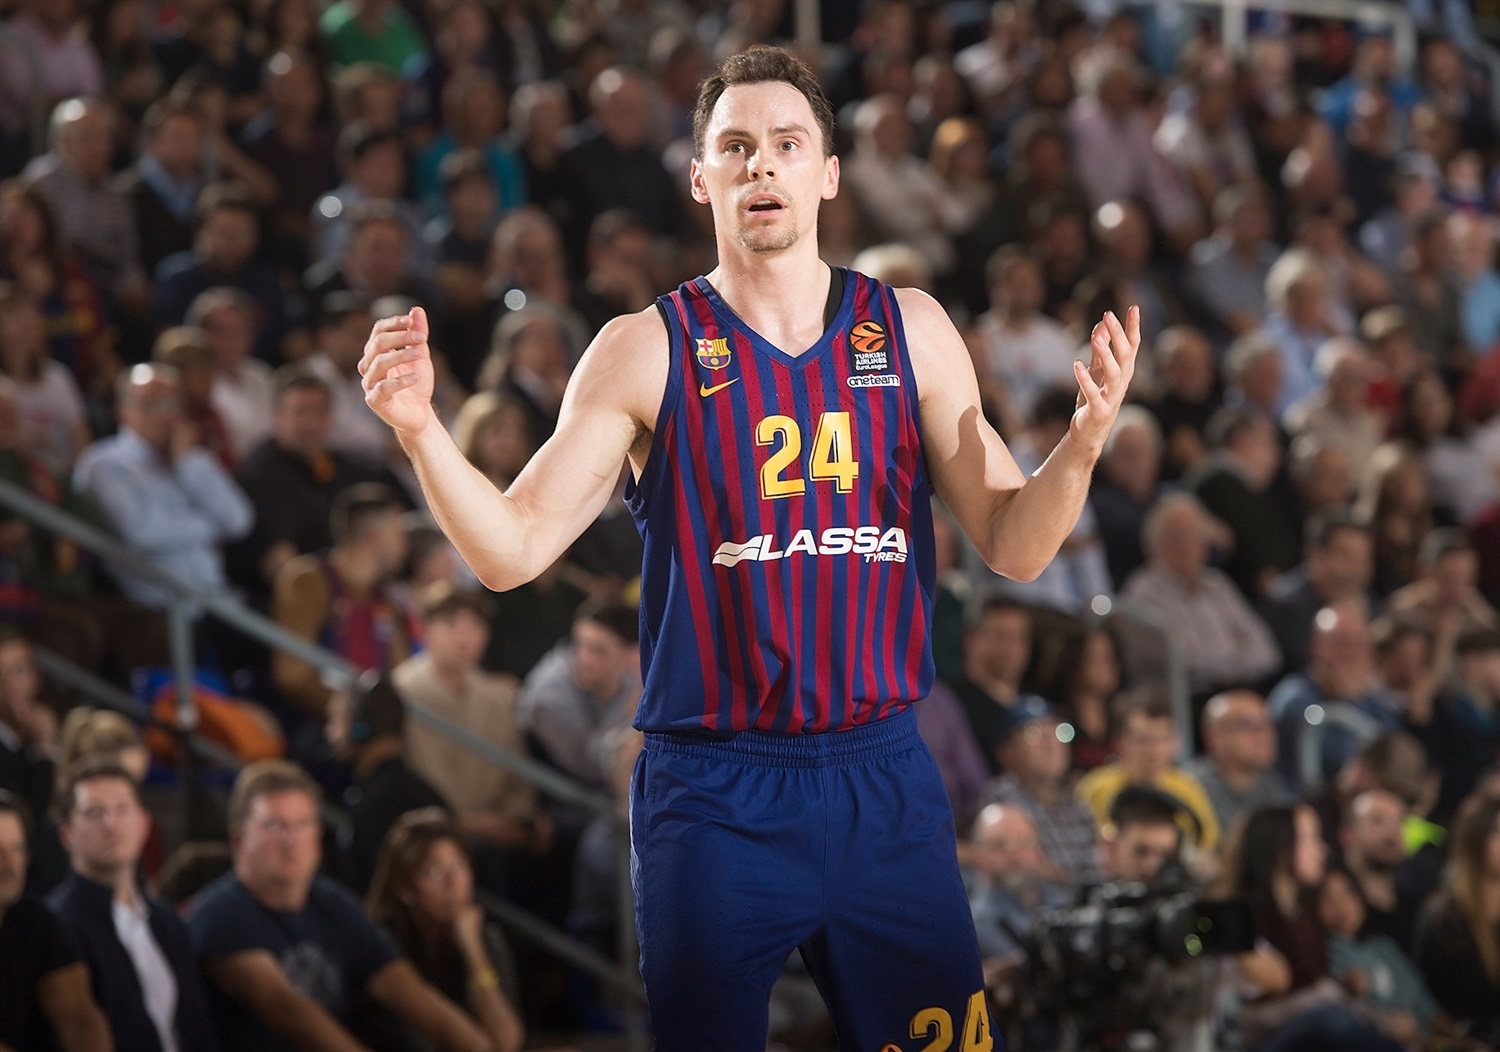 huge selection of 60549 103d7 Playoffs Game 4: FC Barcelona Lassa vs. Anadolu Efes ...